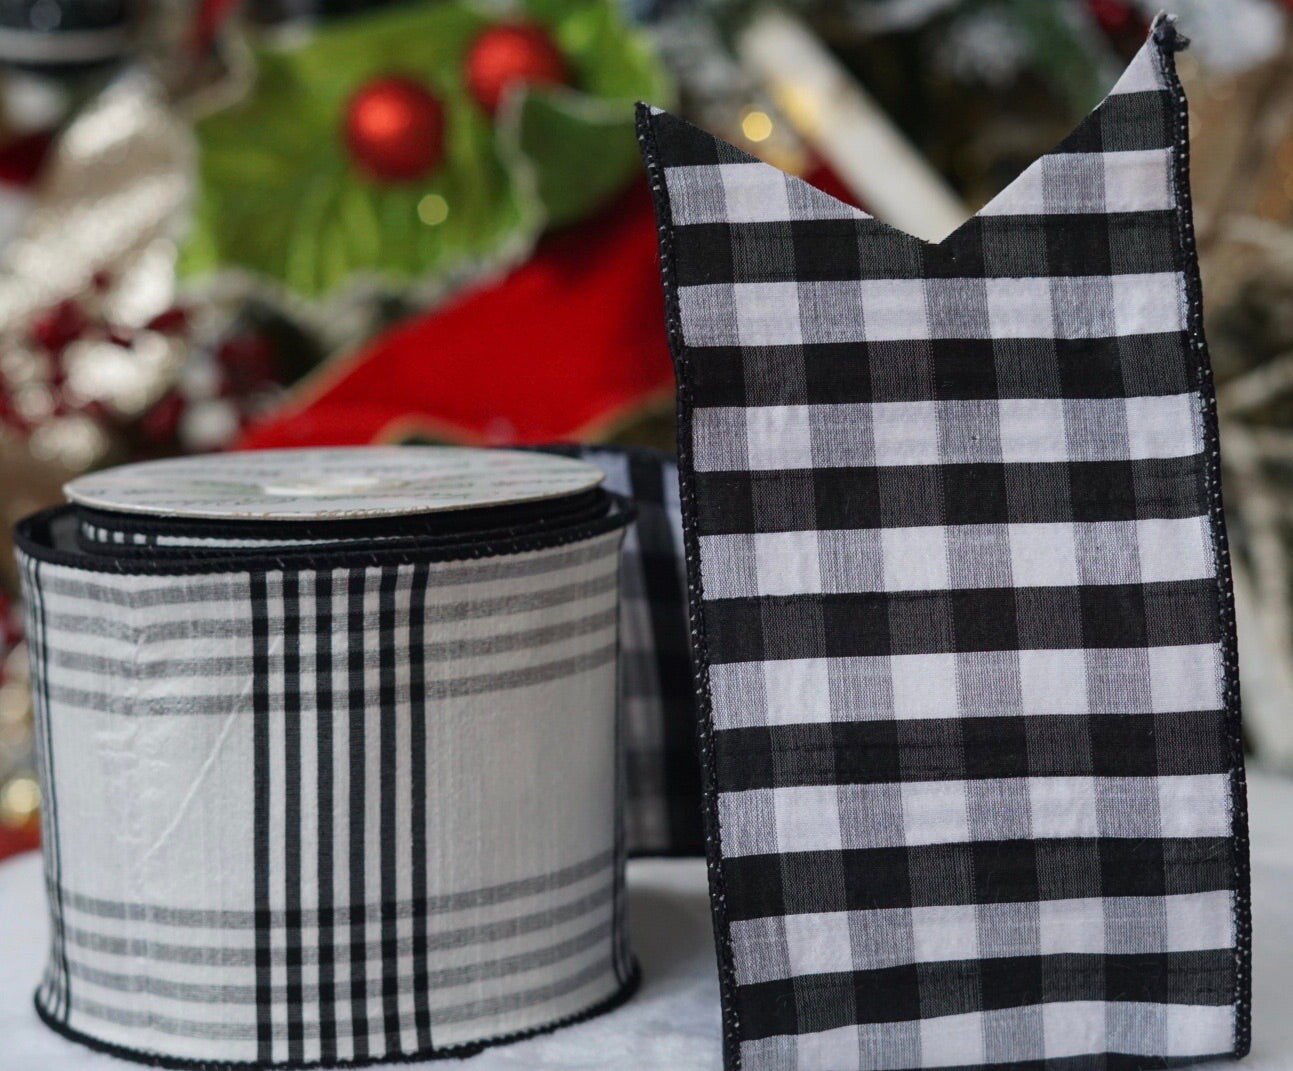 helloholidays,Black and White Gingham/Plaid Ribbon,Farrisilk,Ribbon